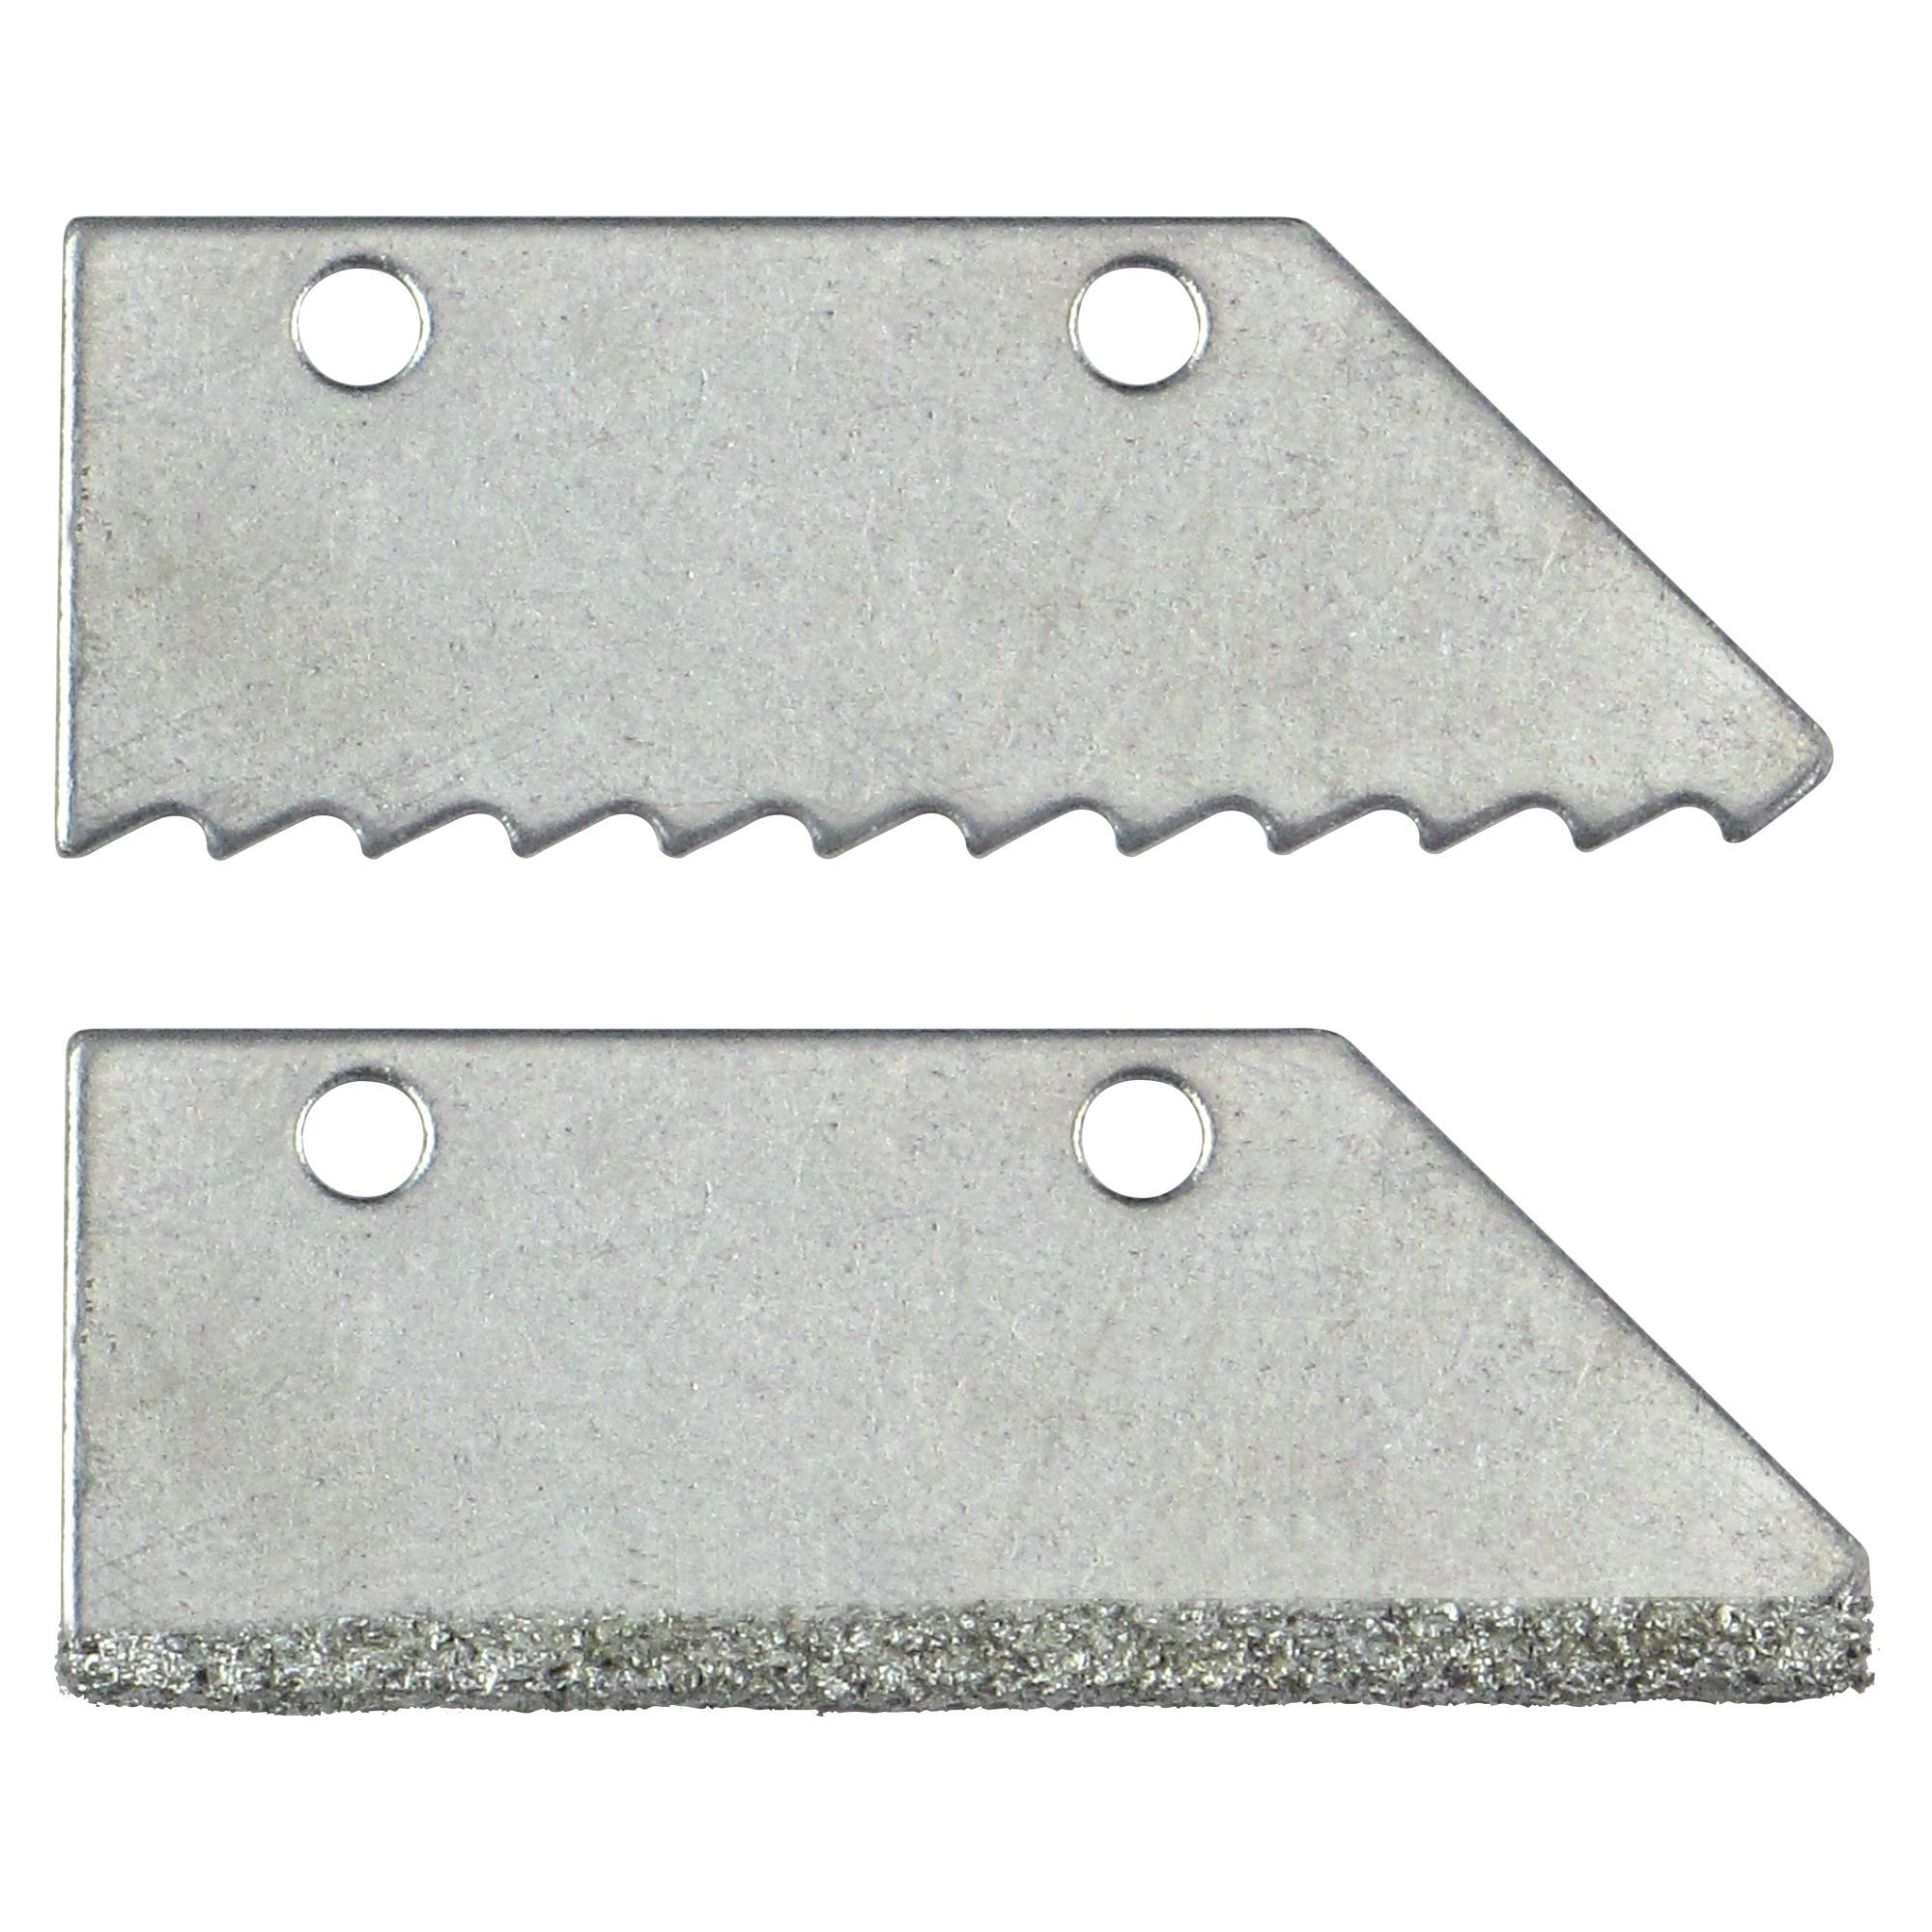 Superior Tile Cutters Inc And Tools 2 Replacement Blades For Grout Saw